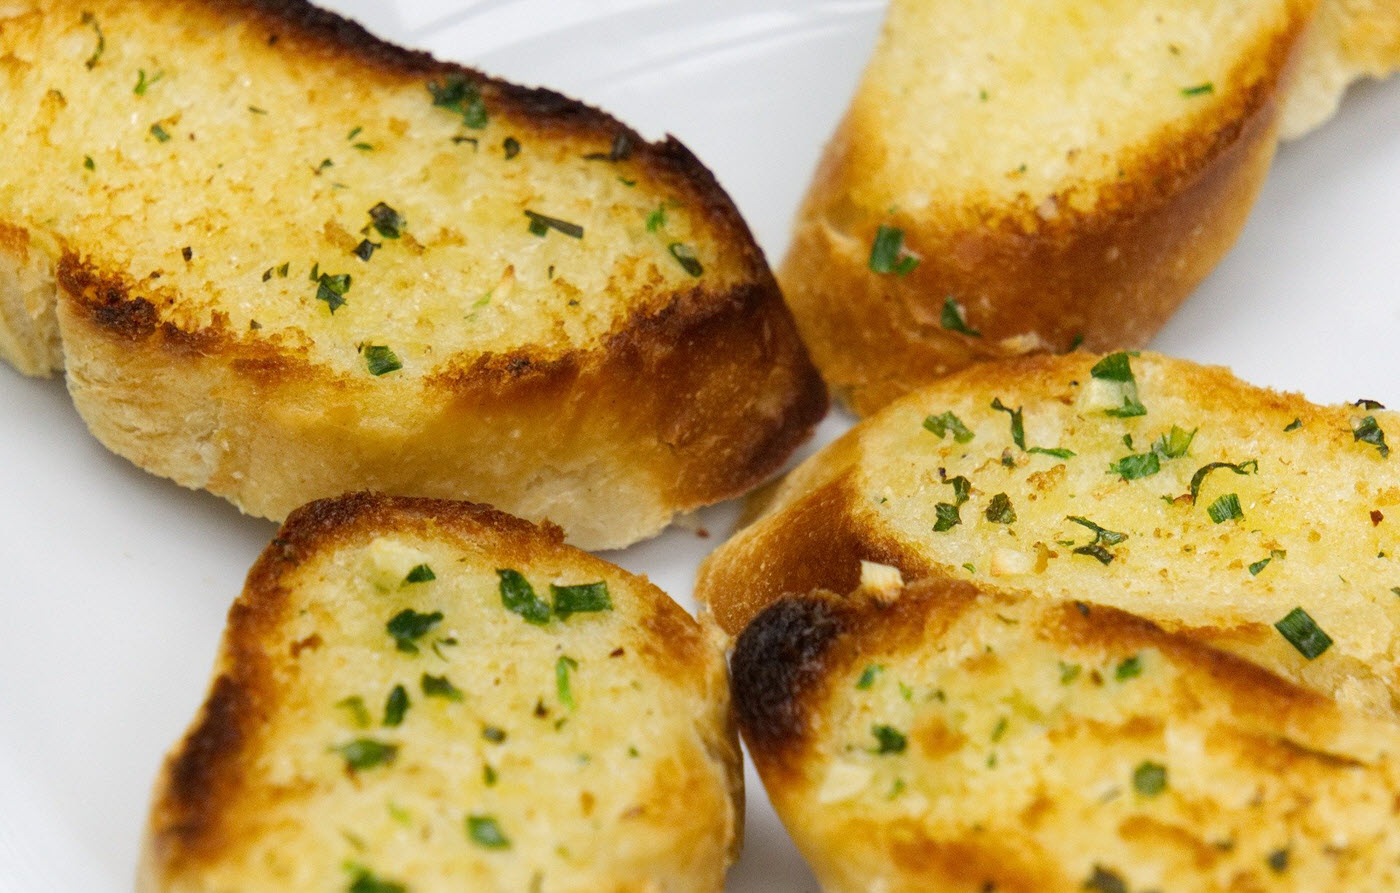 Can dogs eat garlic bread